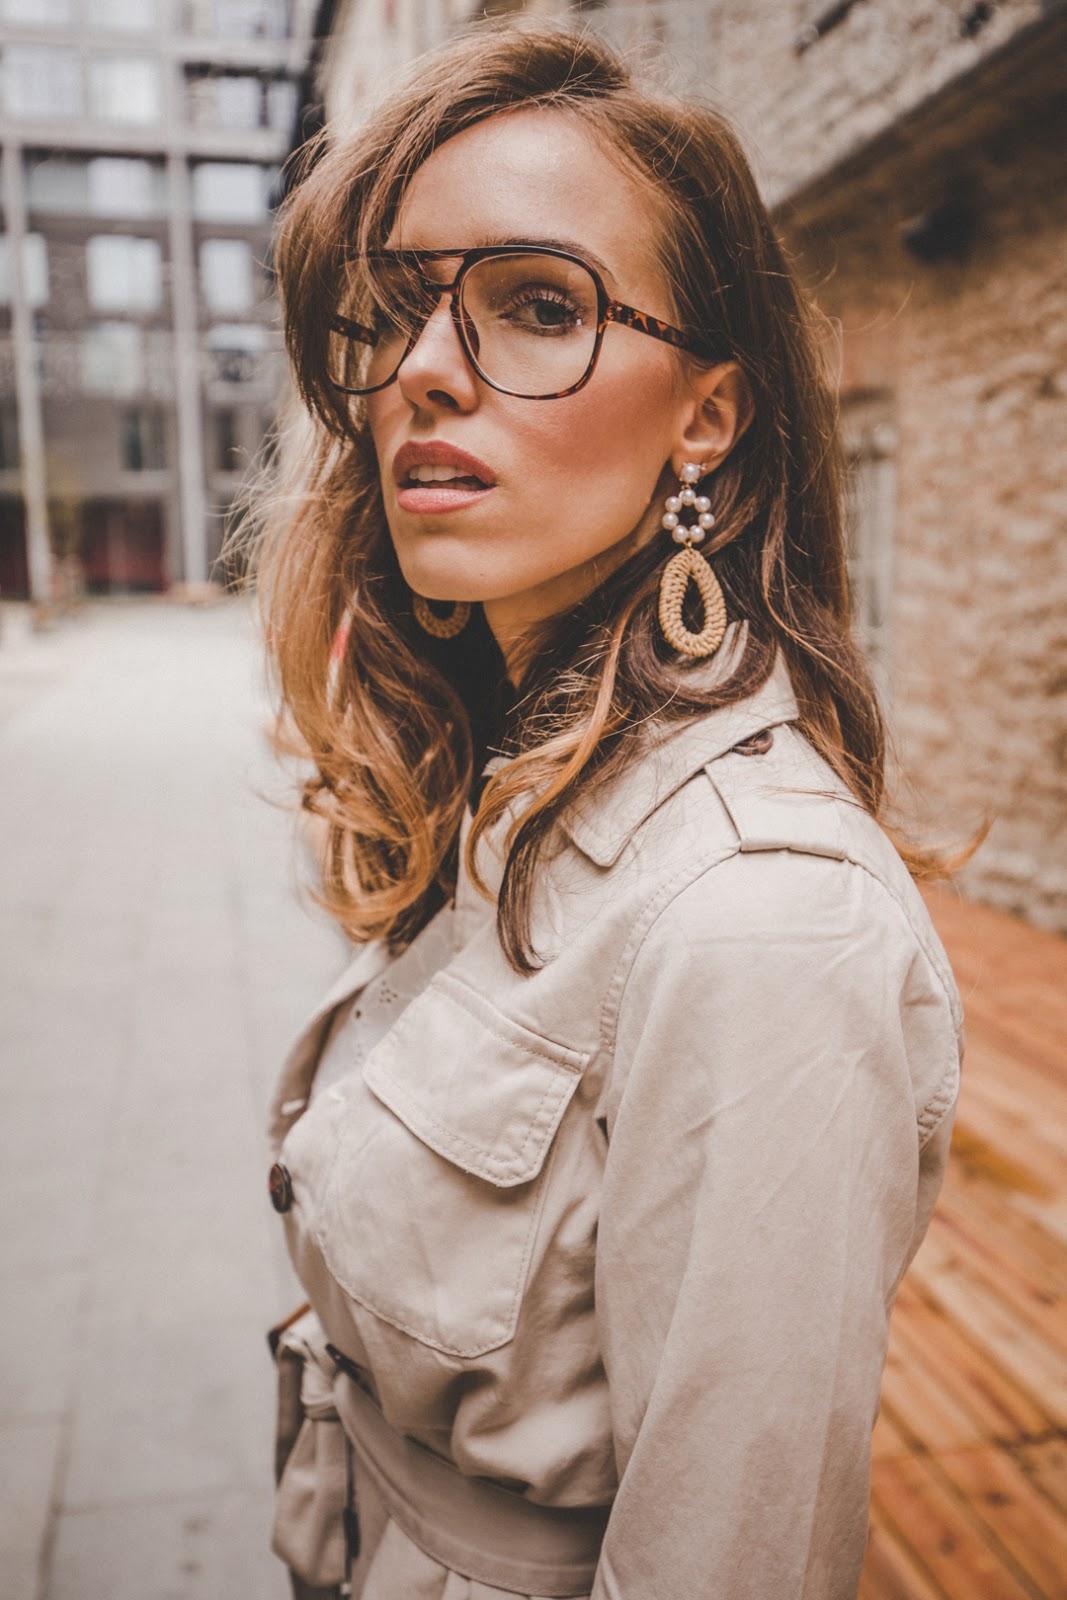 beige safari jacket retro glasses raffia earrings